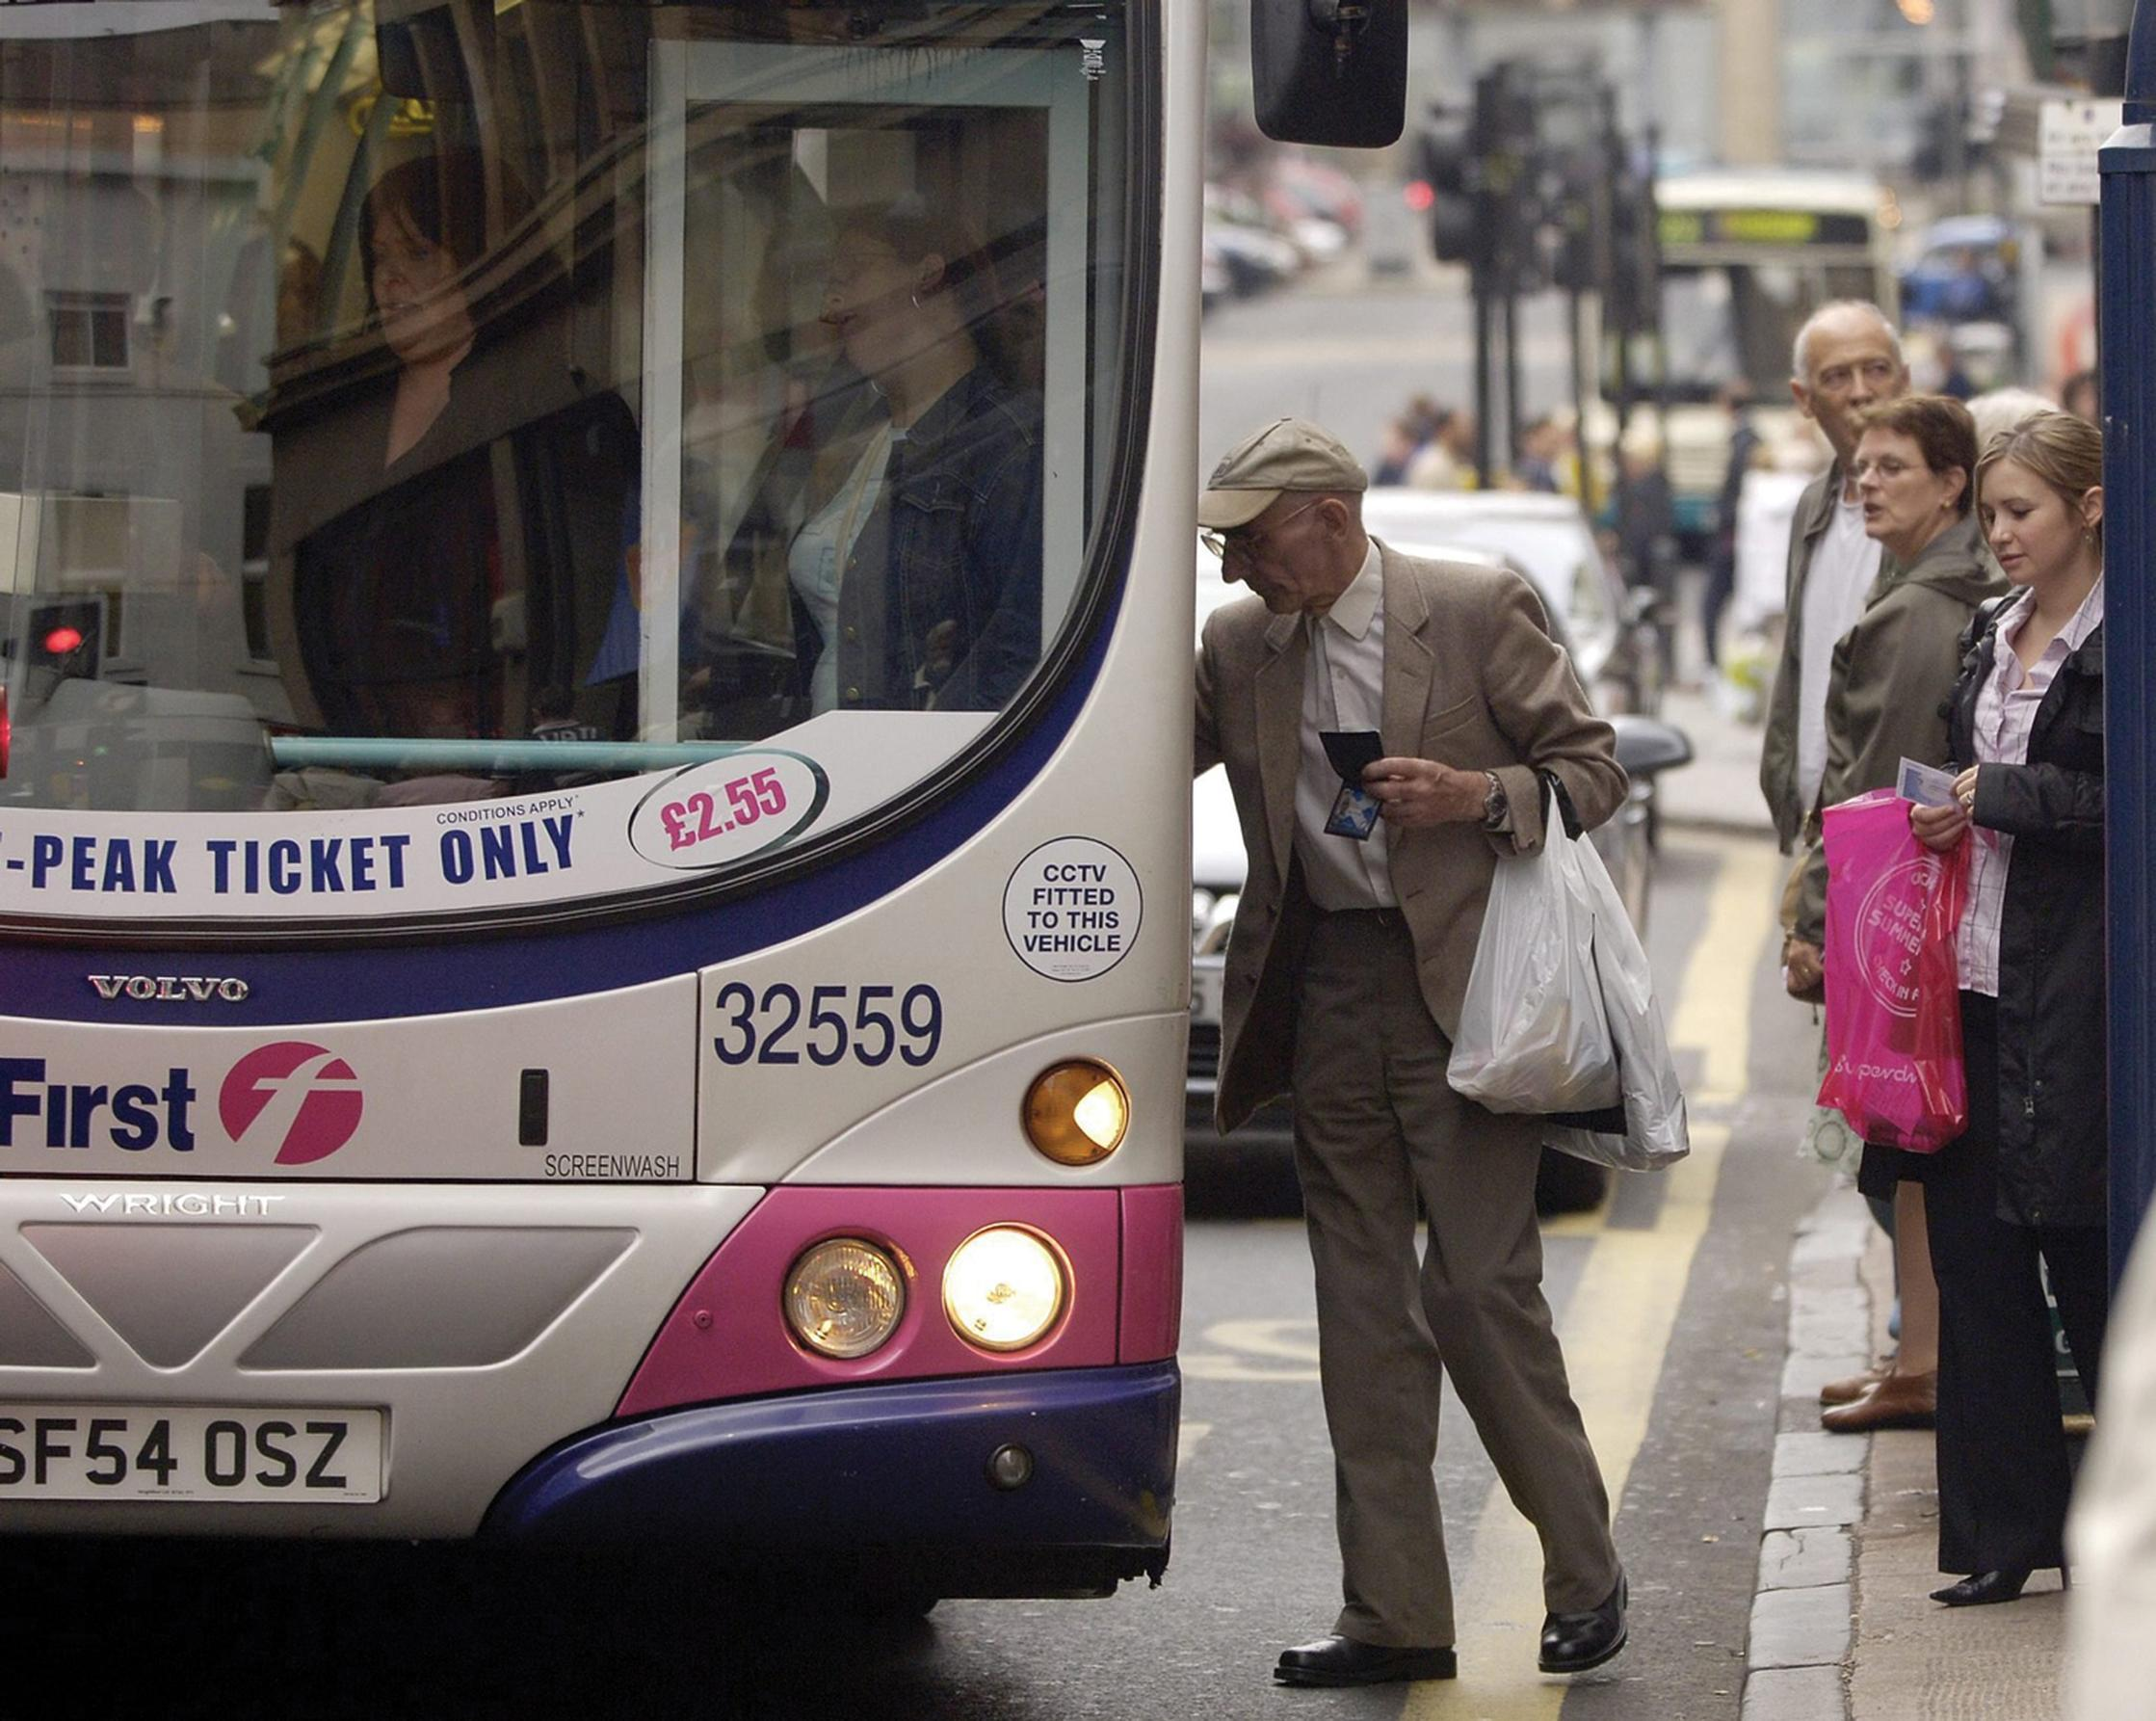 Concessionary fares offer low or medium value, DfT finds